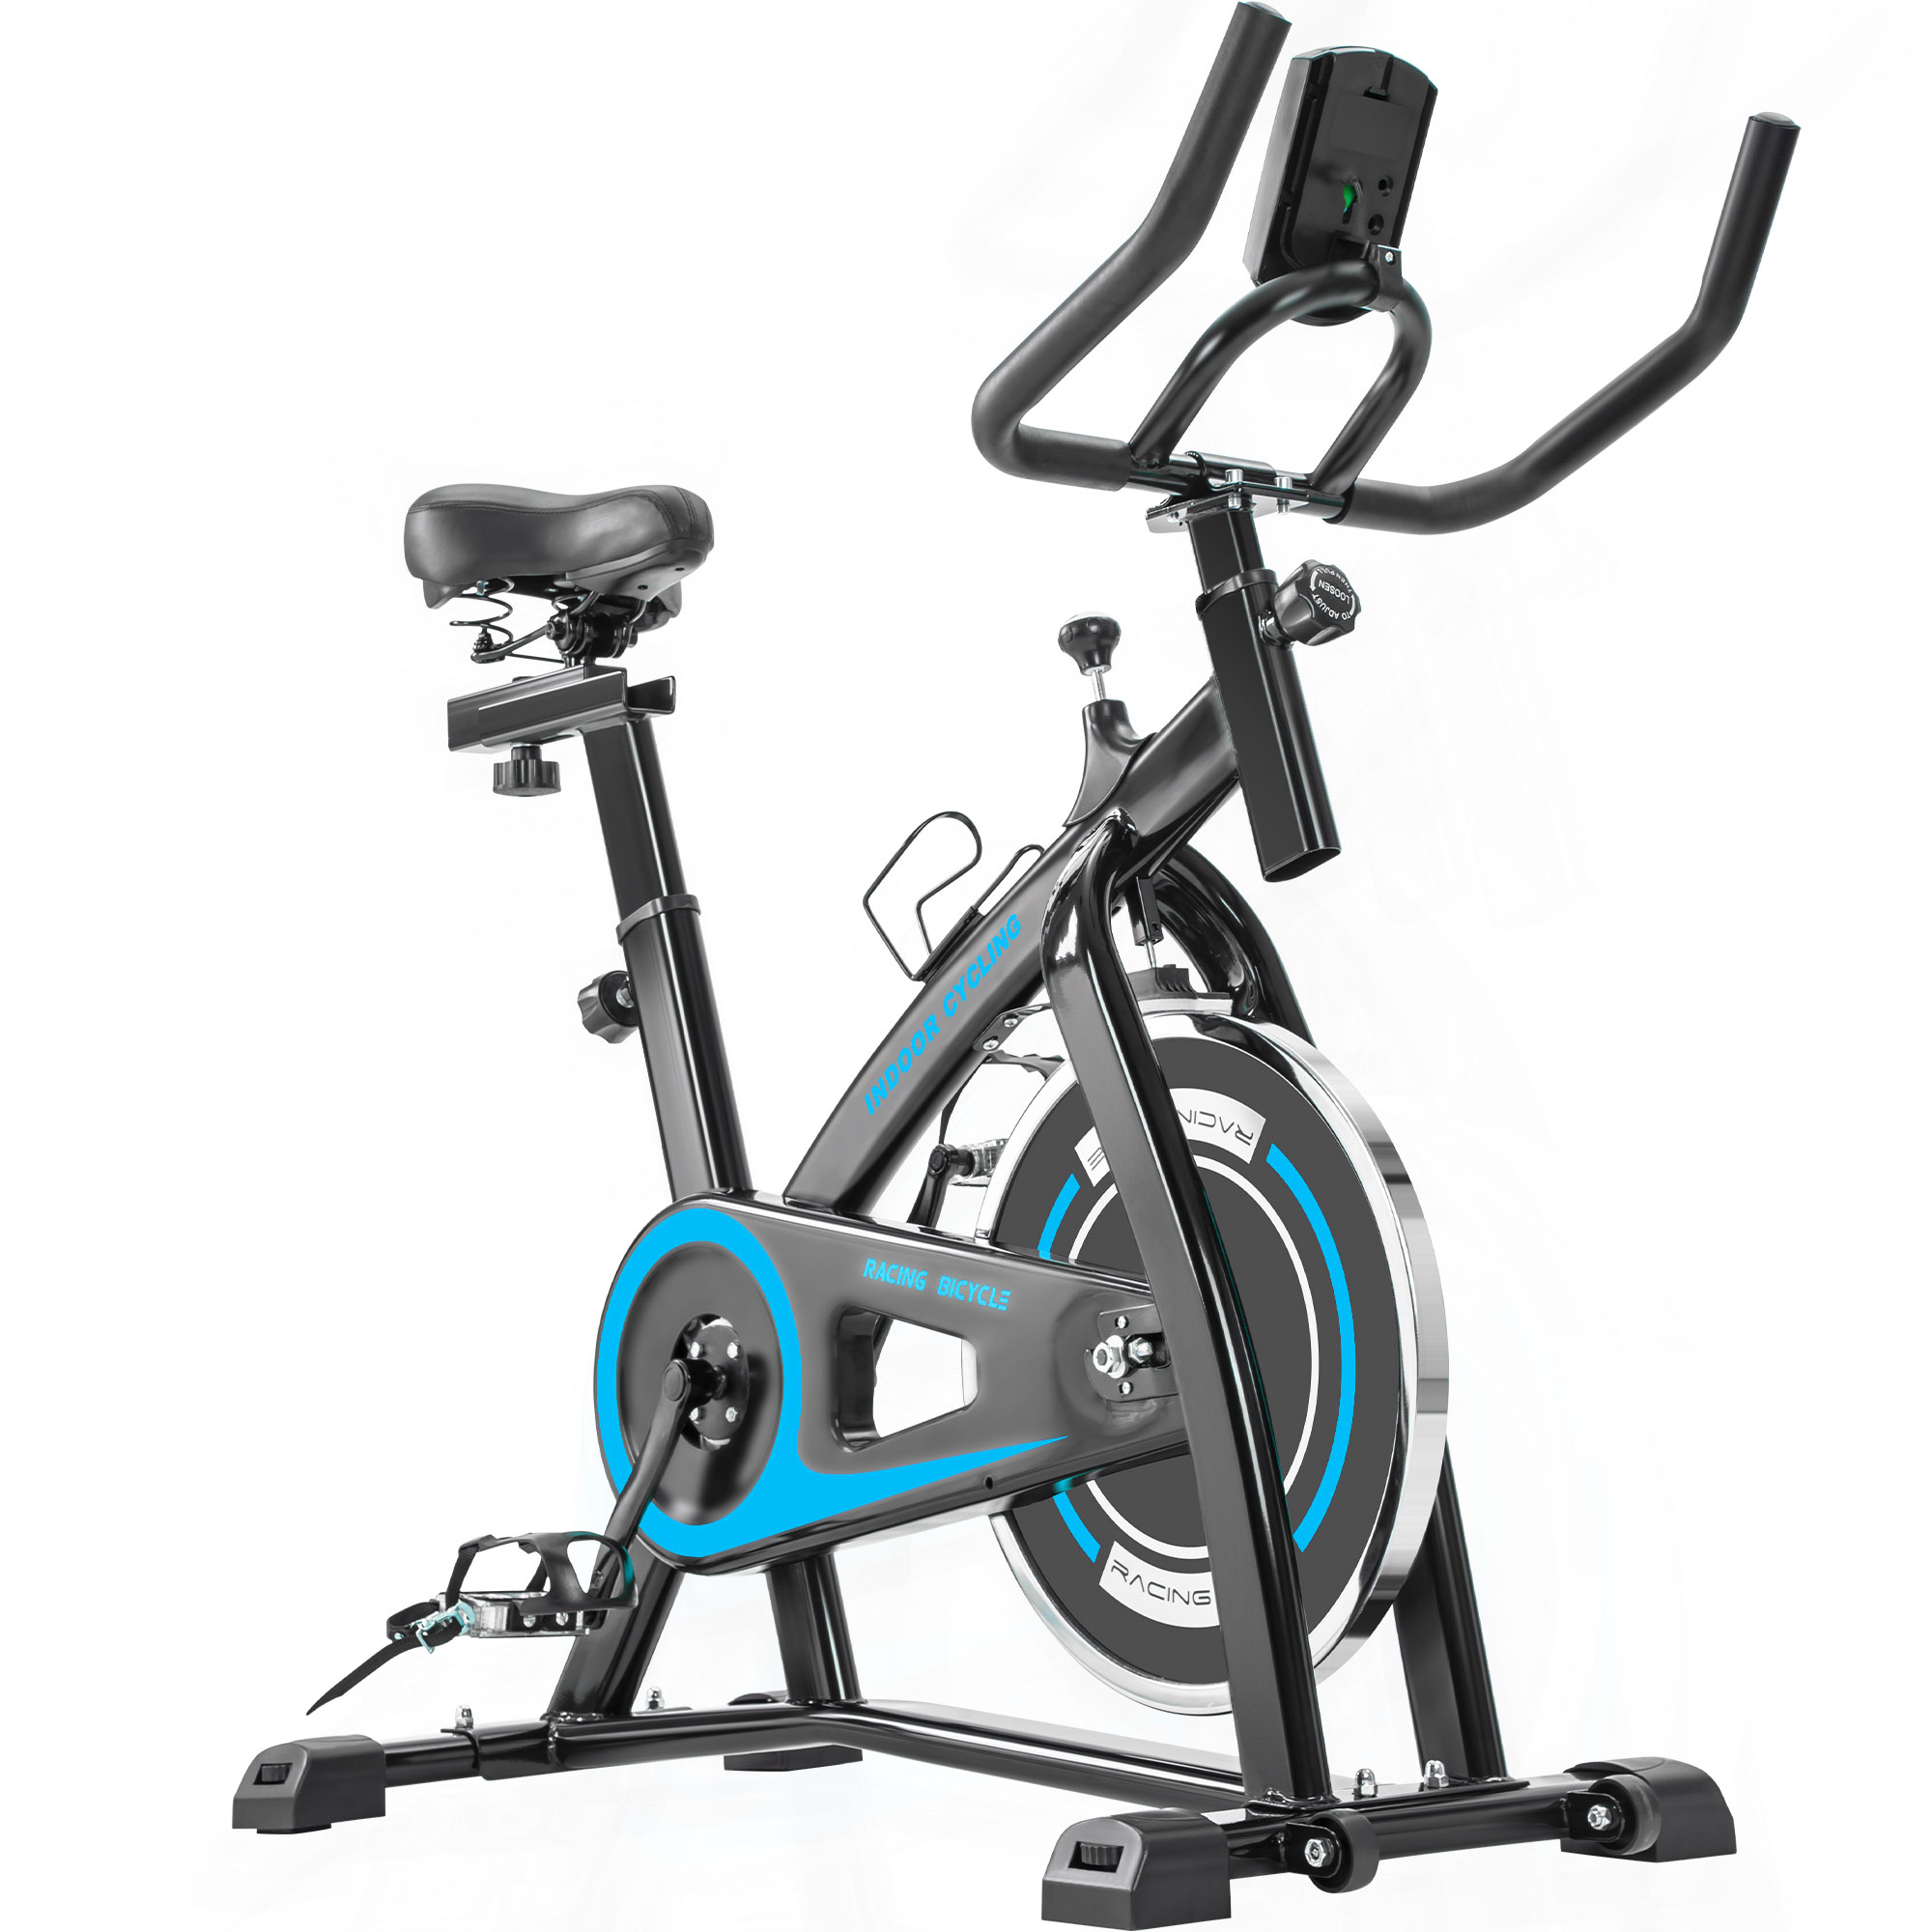 EUROCO Indoor Cycling/Exercise Bike Trainer with Comfortable Seat Cushion